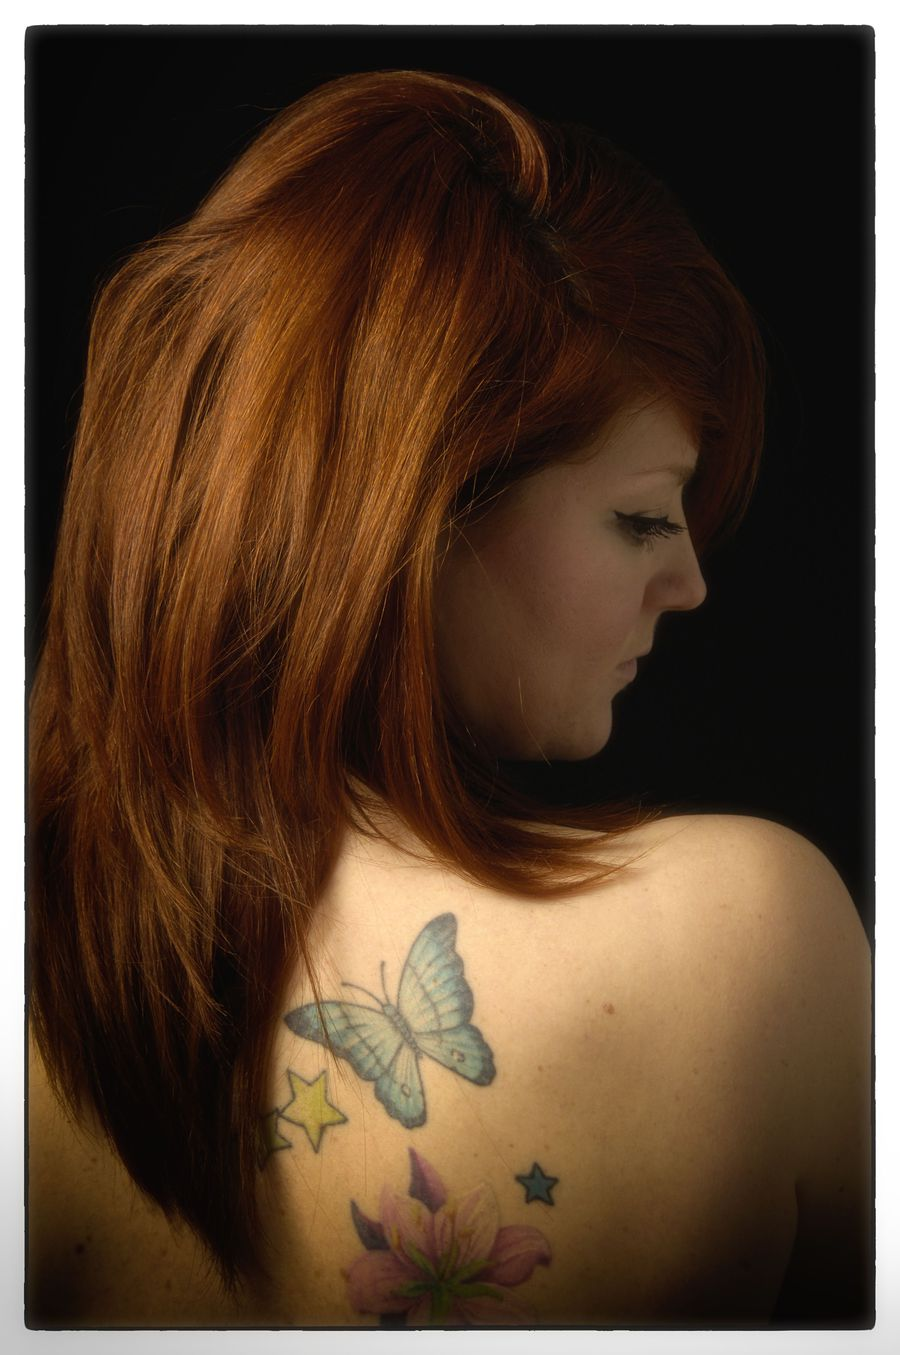 Girl with the ginger hair and tattoo / Photography by Jon GODDARD / Uploaded 20th May 2015 @ 12:02 PM